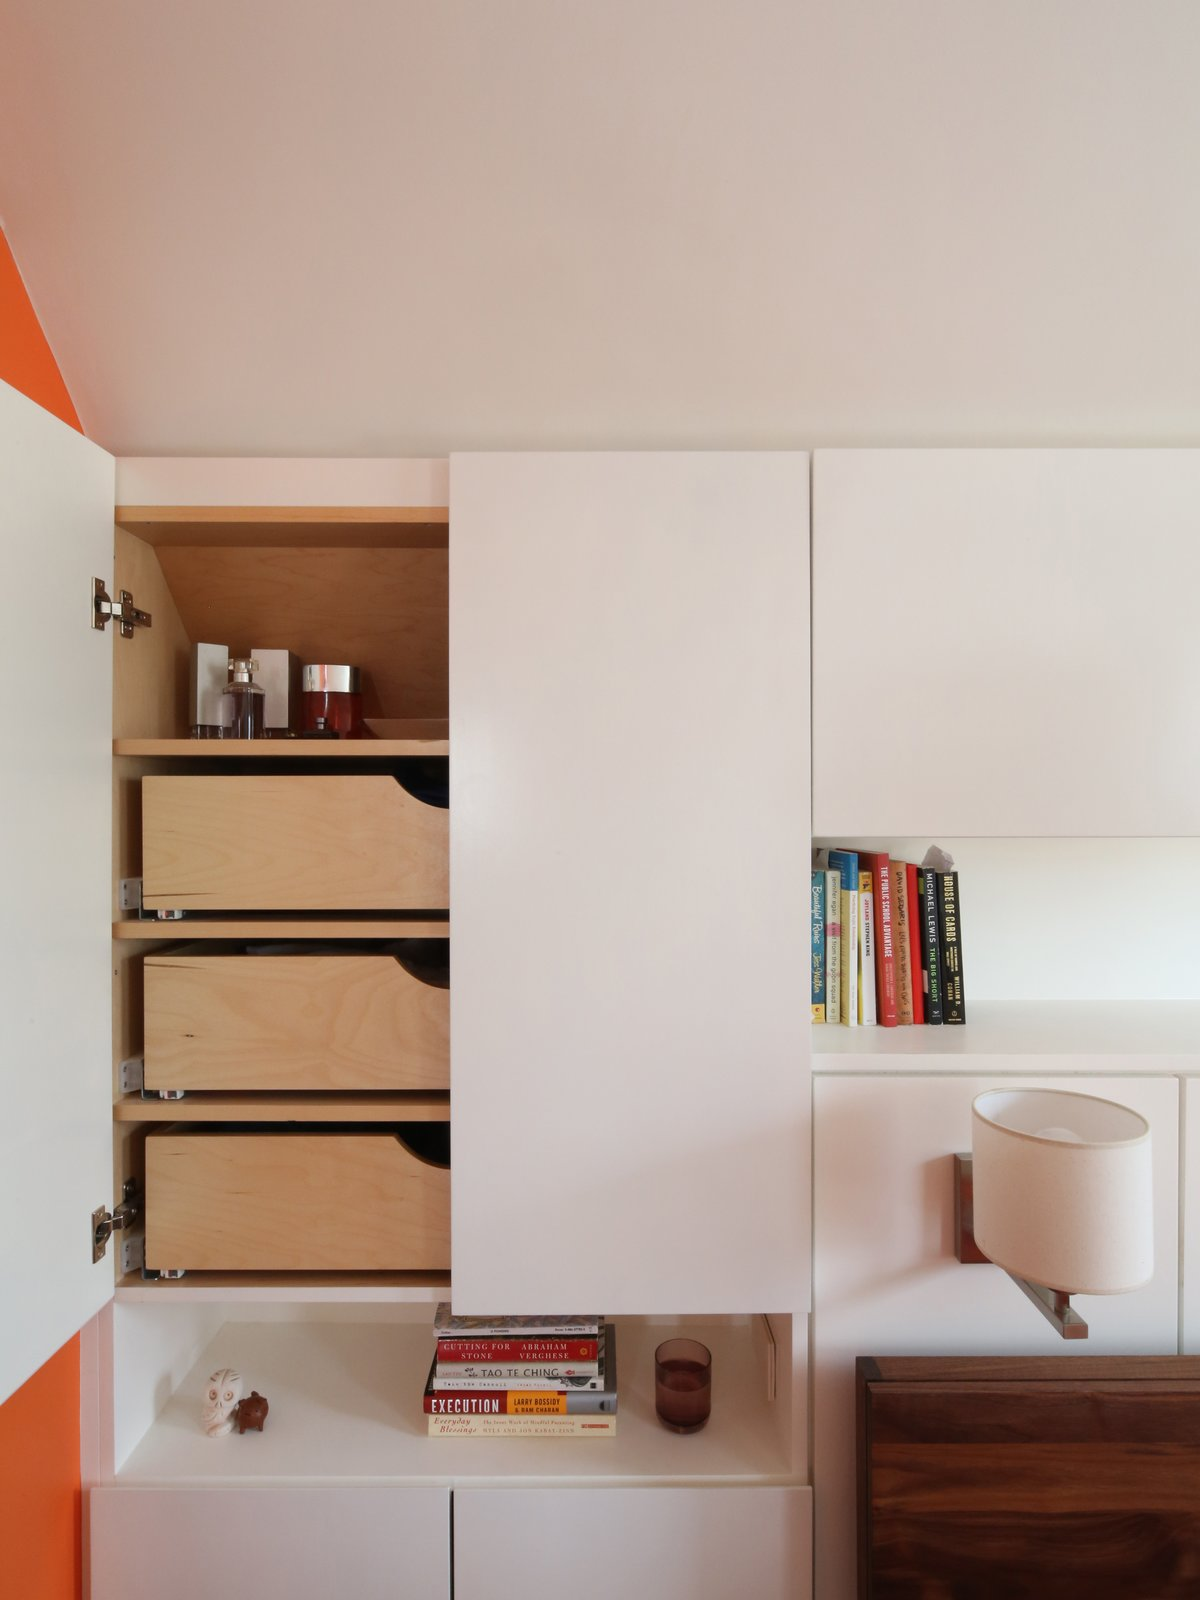 """In order to save space, Barrett designed custom storage under the shortest part of the sloped roof. """"The custom millwork was a big ticket item, but critical to making the suite feel spacious,"""" Barrett says. """"Built- in storage is good value for the money because it allows you to harvest previously unusable space and it allows a smaller space to feel larger since you don't need a lot of furniture.  How To: Bright Bedroom Renovation  by Olivia Martin"""